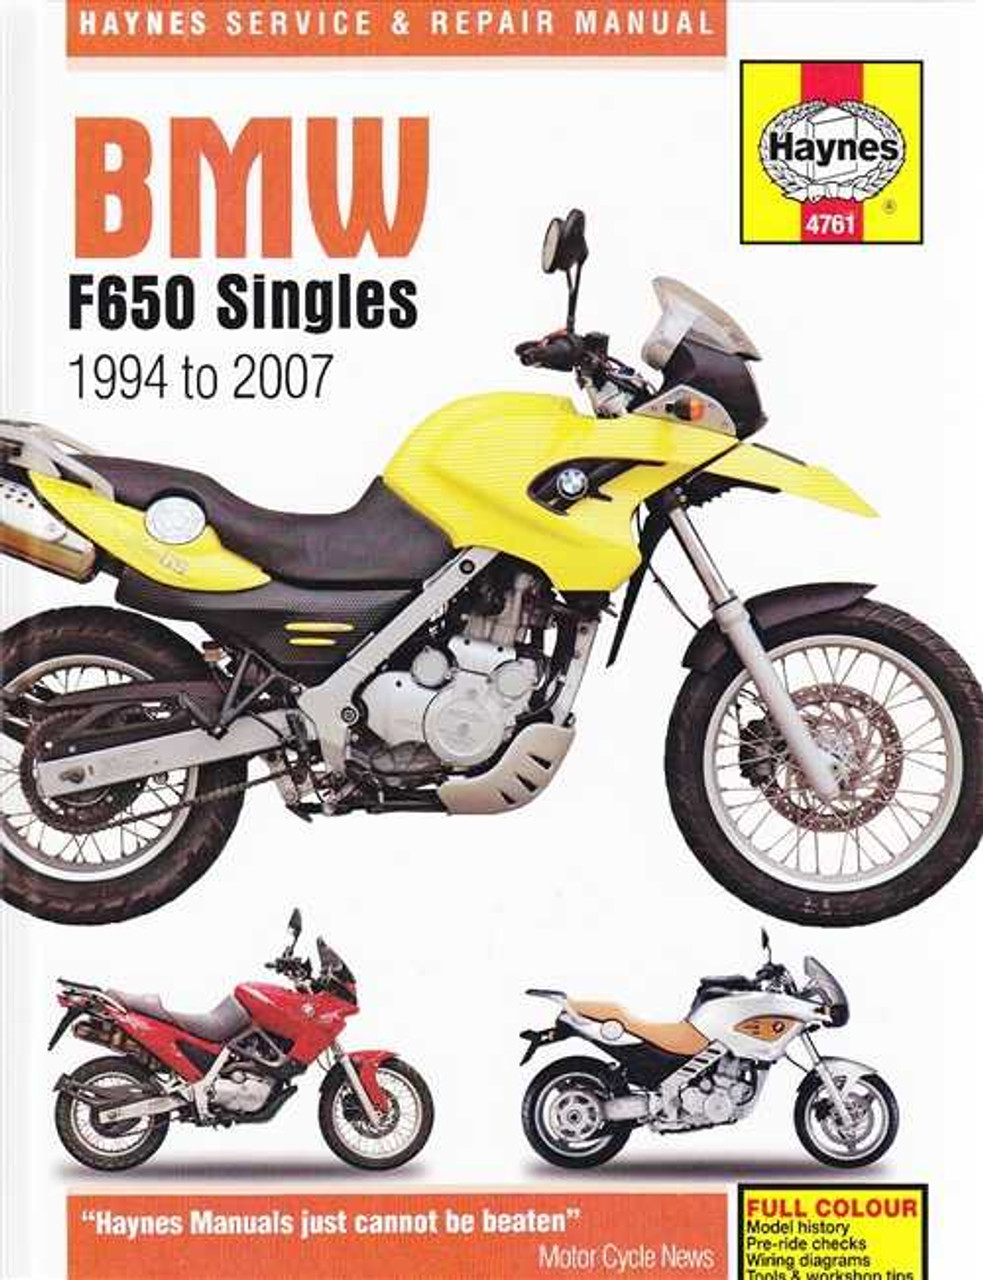 b18971b_bmw_f650_singles_repair_manual__39675 1339460525 jpg?c=2?imbypass=on